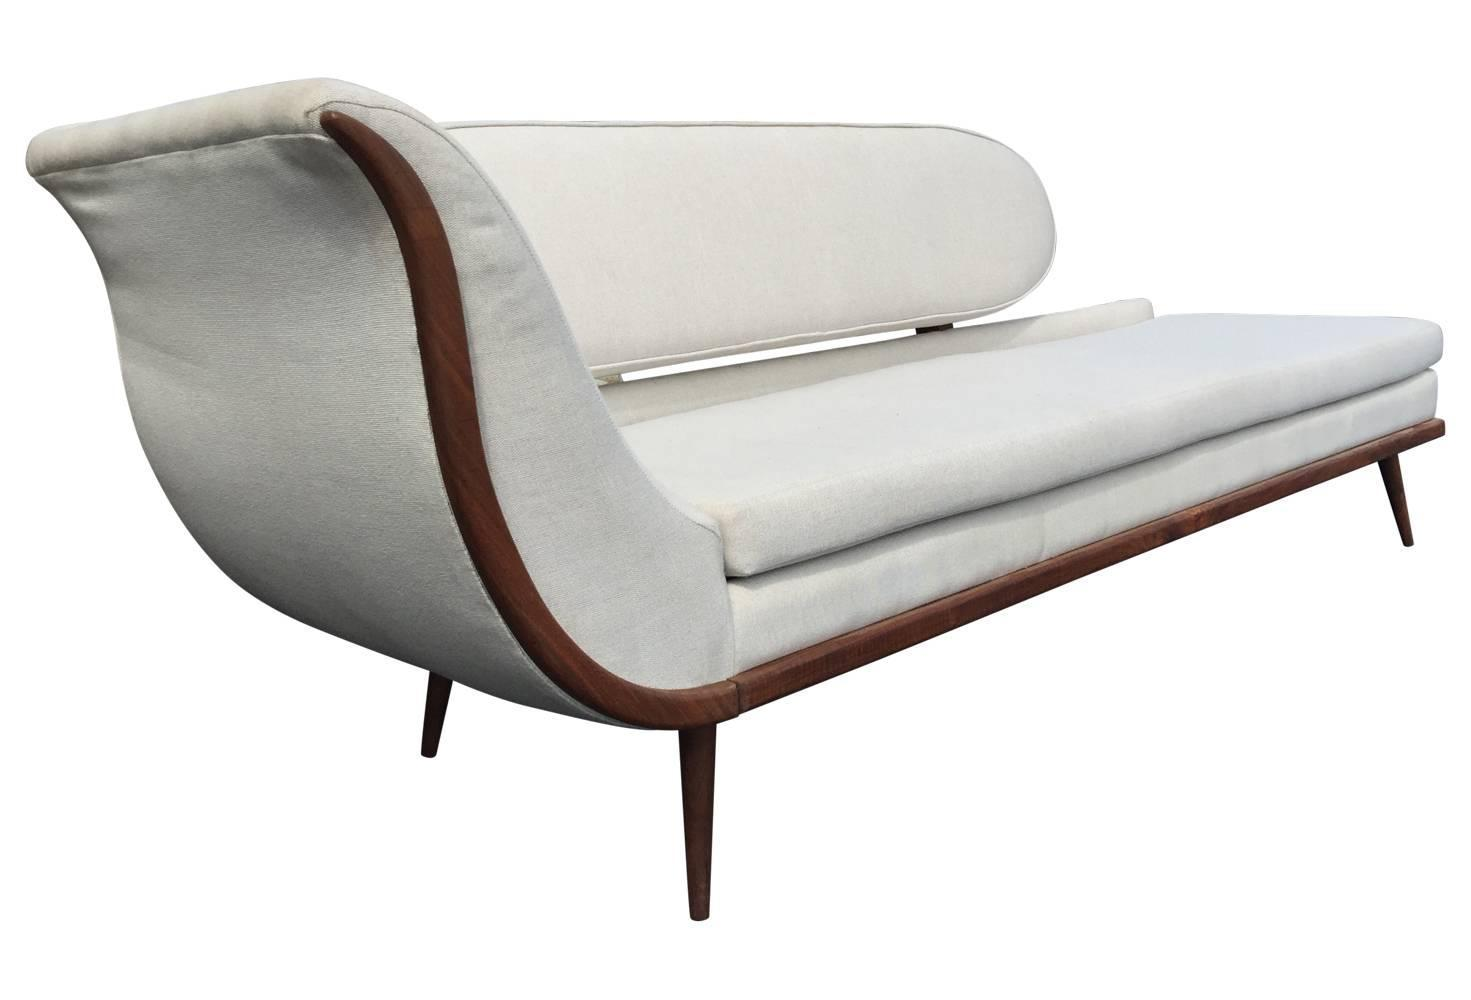 Exquisite Mid-Century Modern Sofa Settee by Cimon of ...